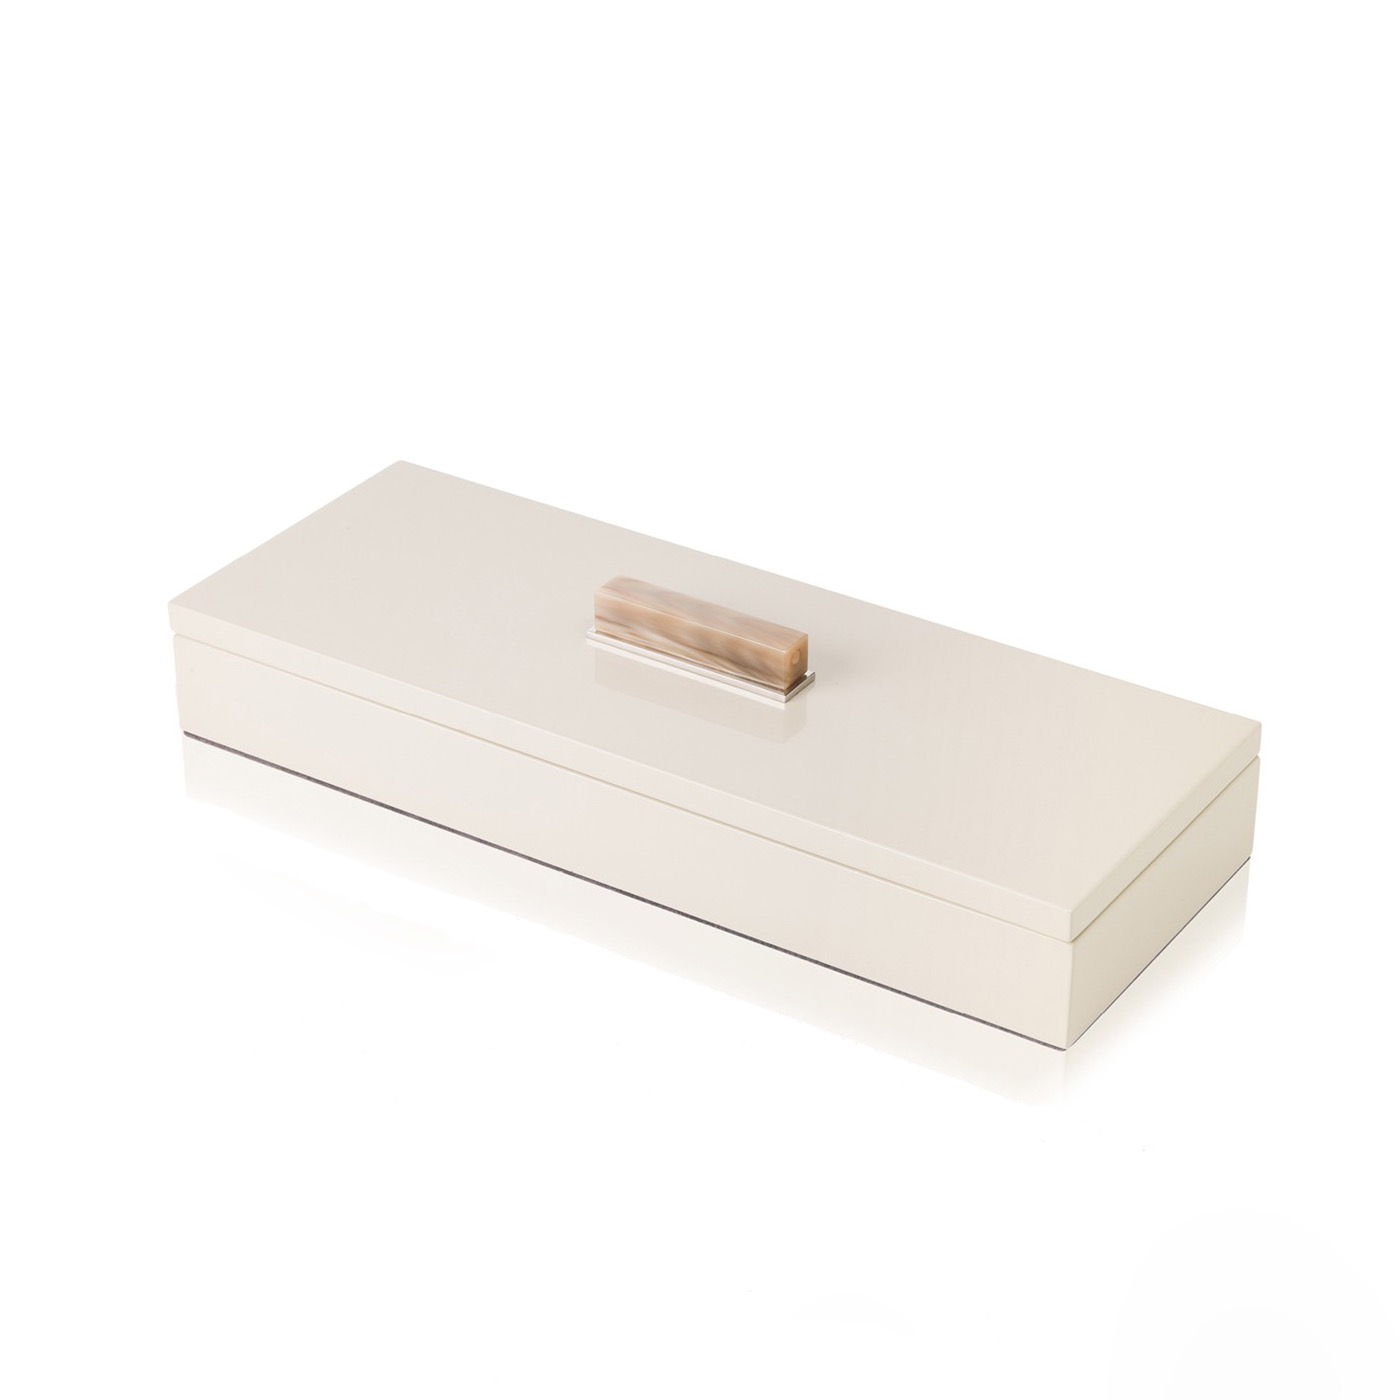 Mombusa Rectangular Lacquer Boxes | Champagne